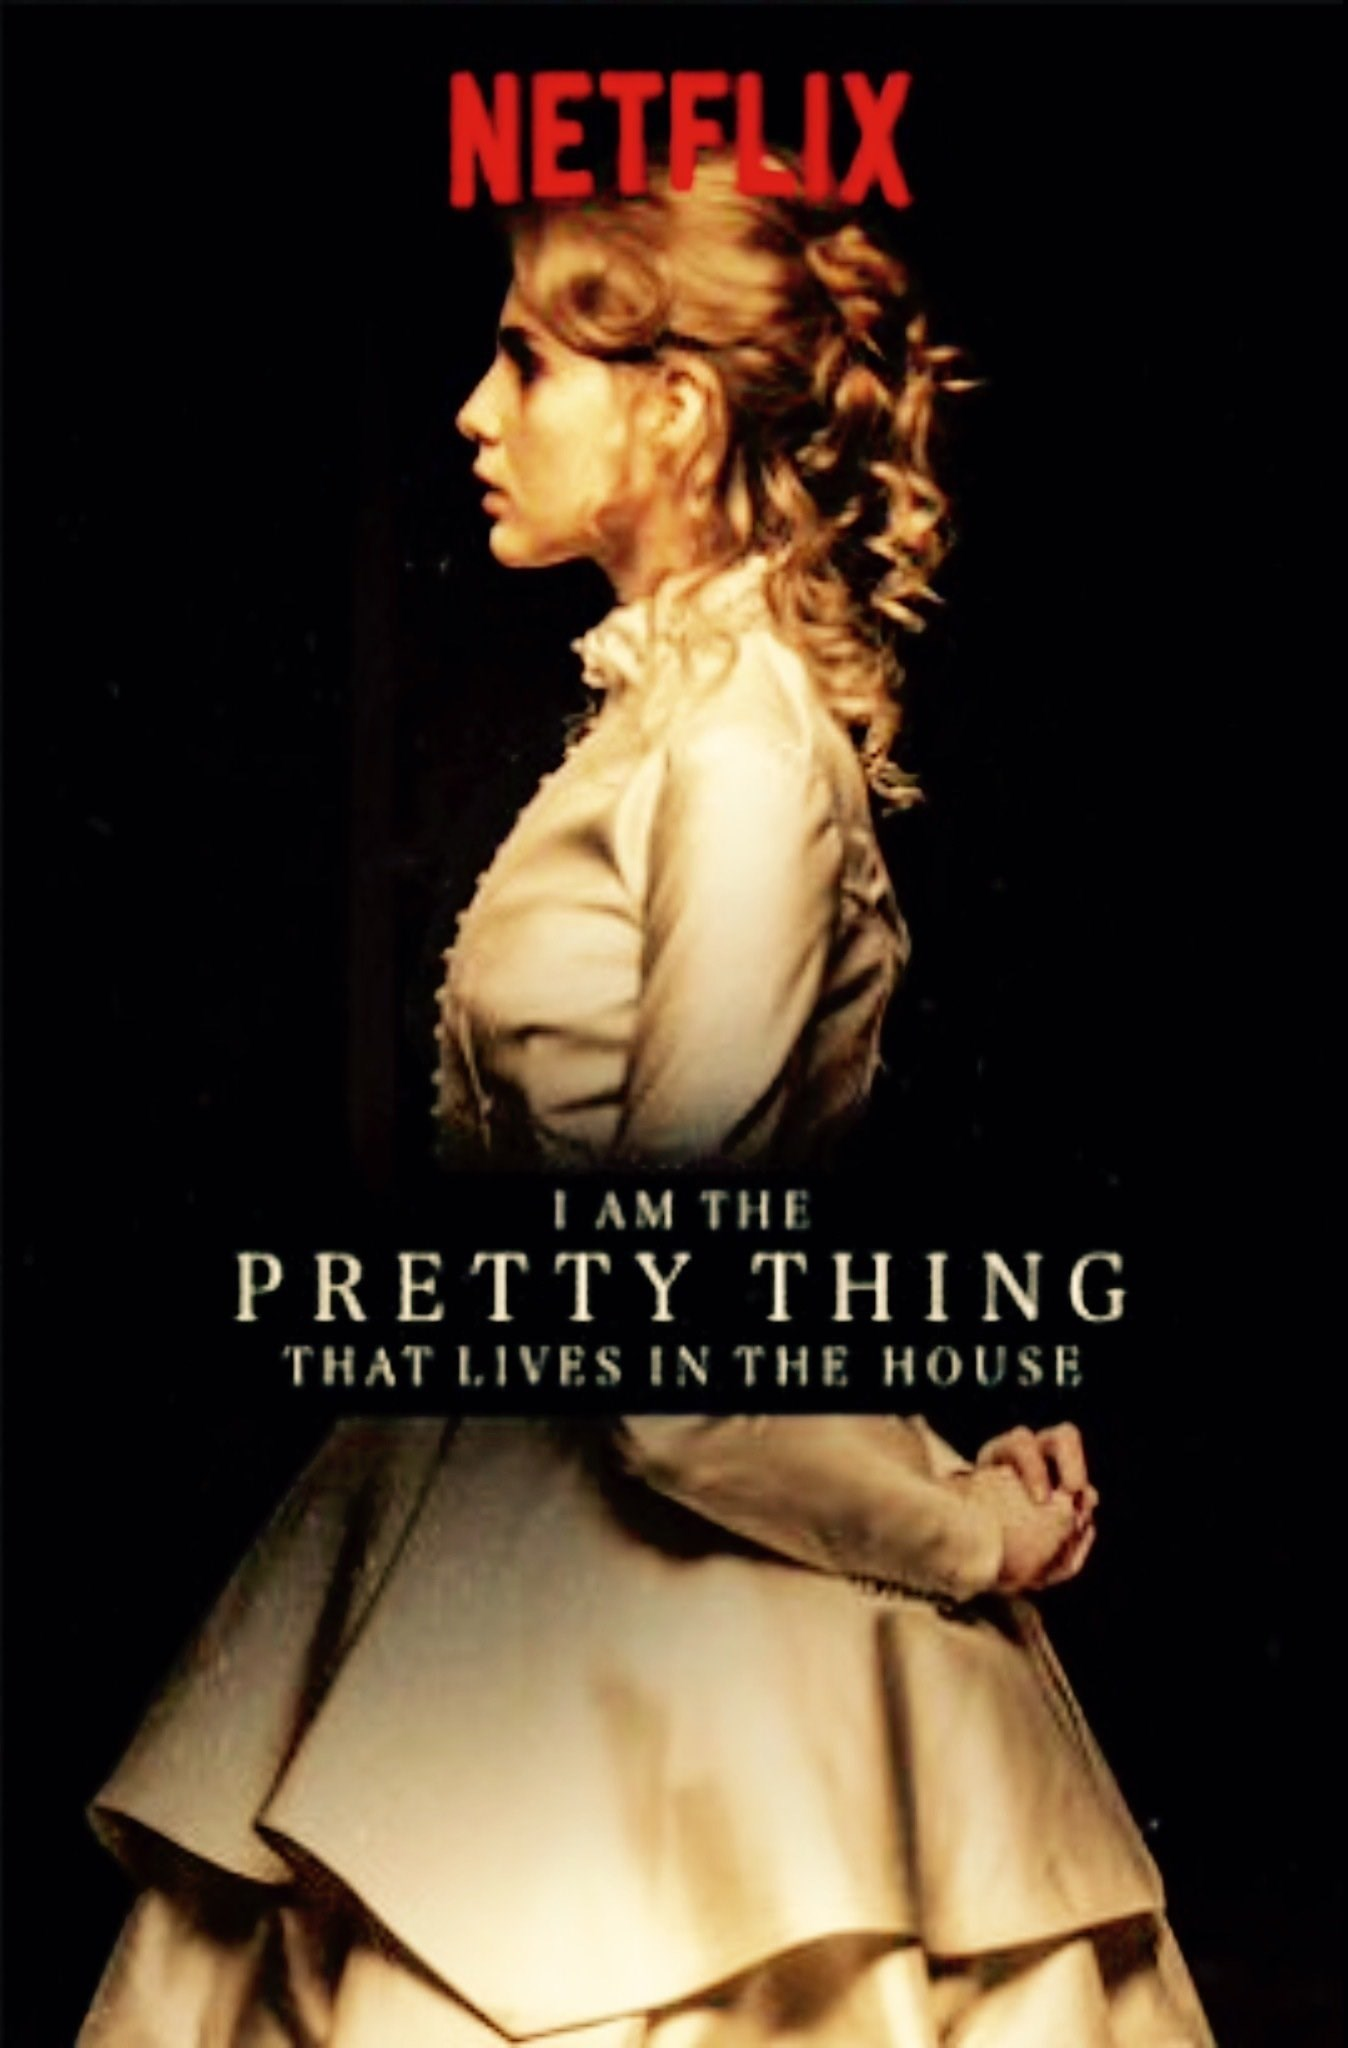 I Am The Pretty Thing That Lives In The House film review